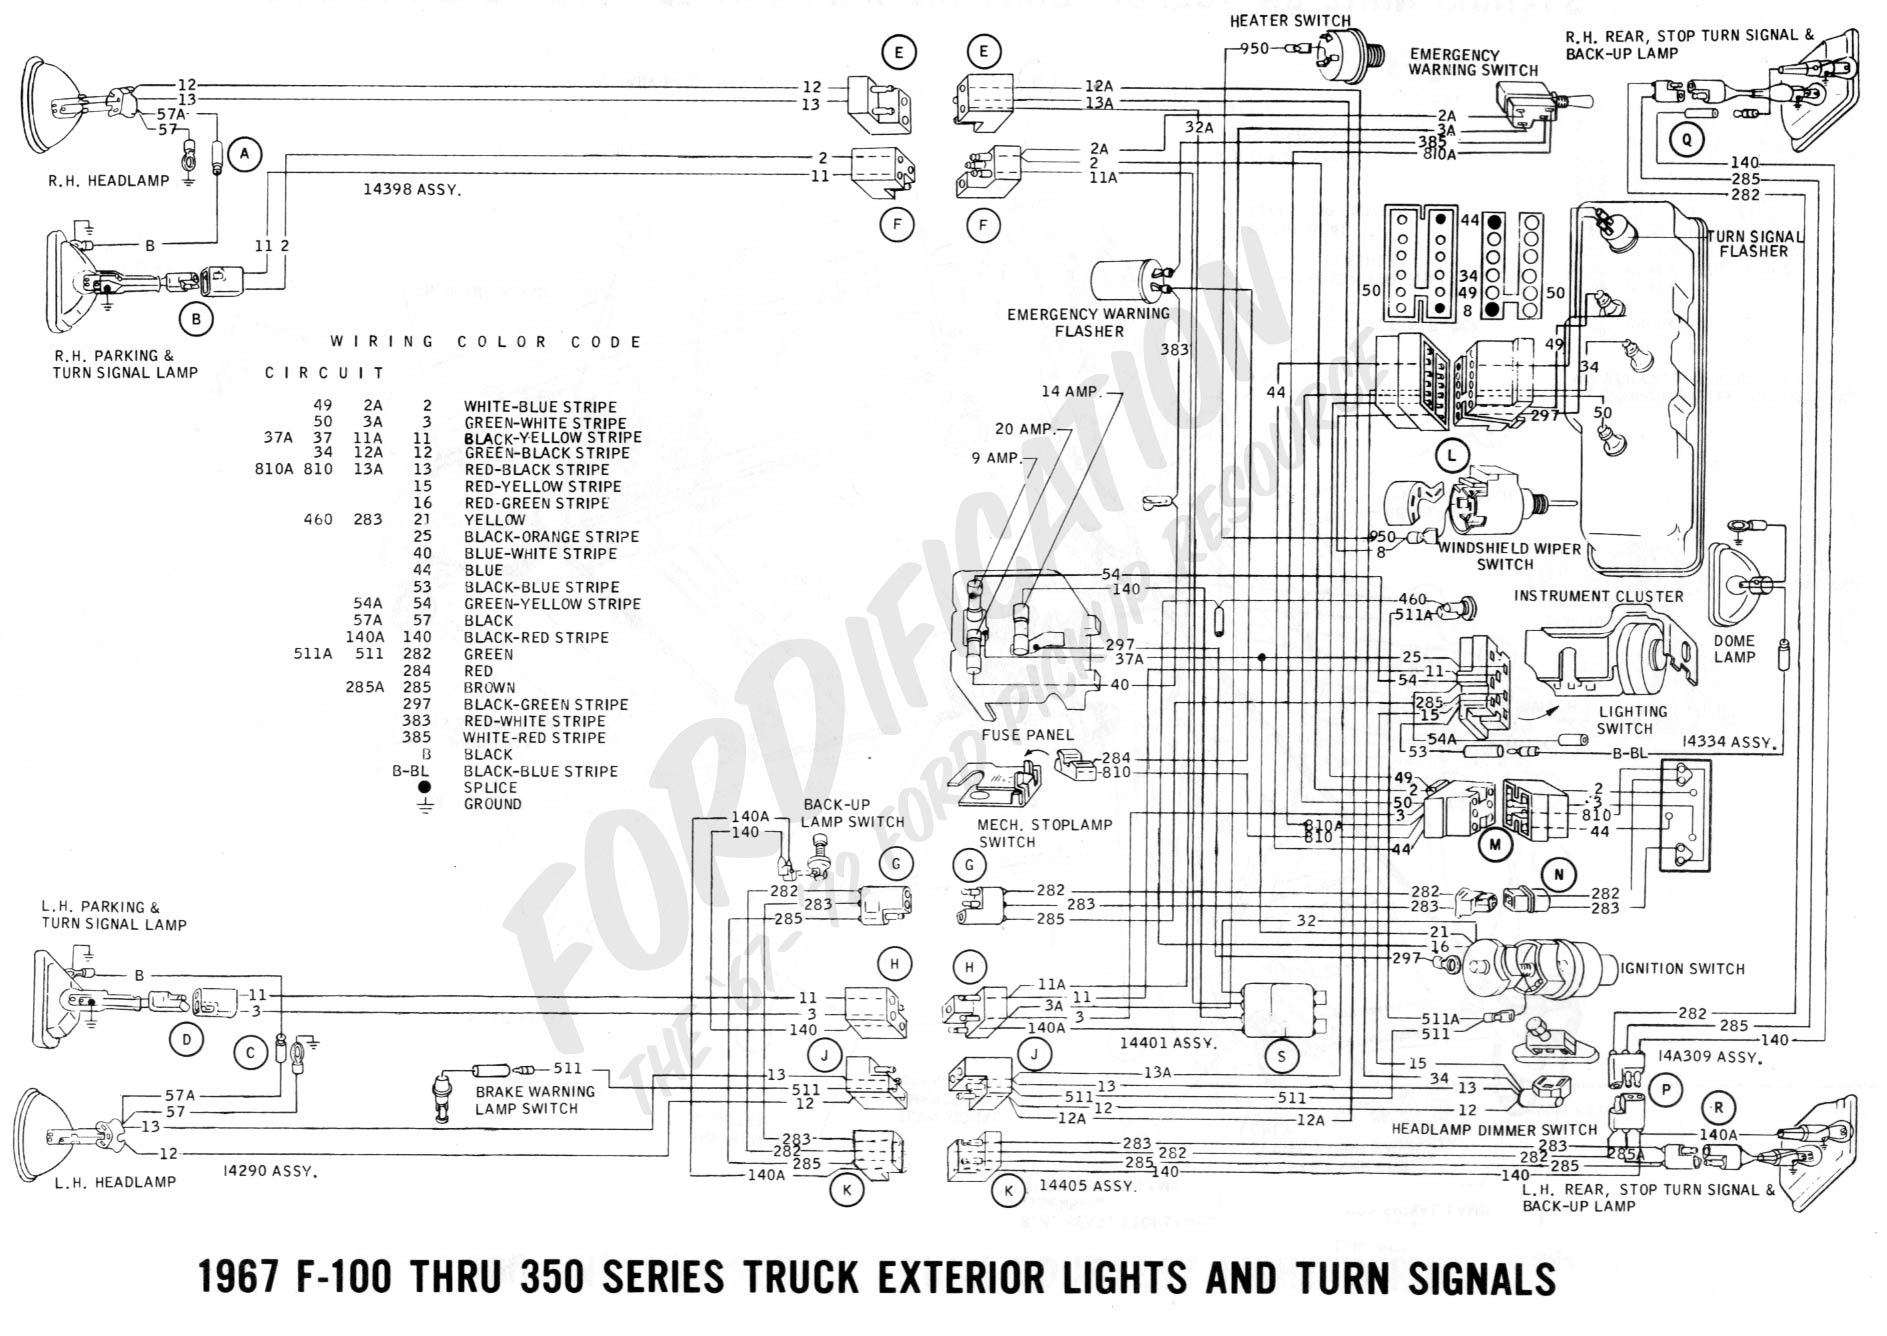 hight resolution of 1967 f250 wiring diagram wiring diagram schemes 1971 ford f250 wiring diagram 1966 ford f250 wiring